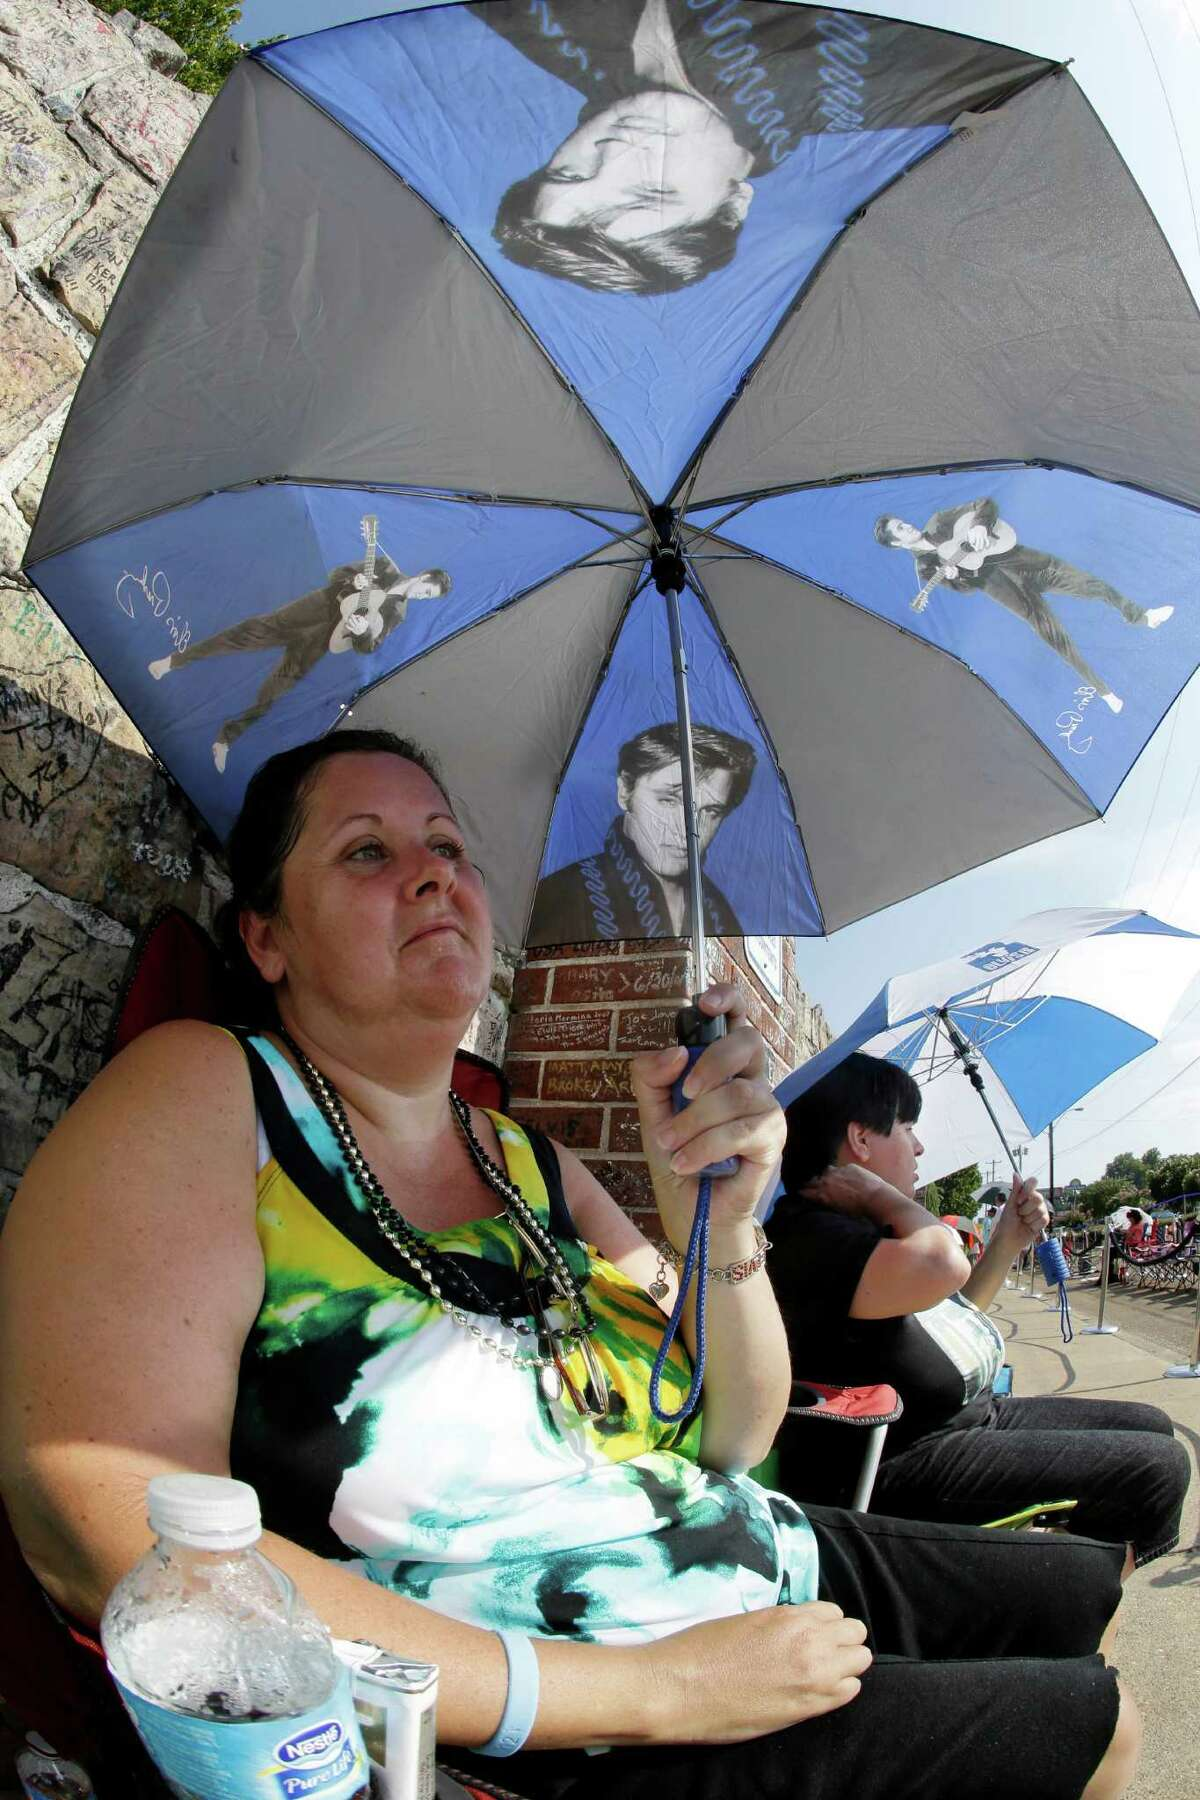 Elvis Presley fan Mary Ann Seiber, from Knoxville, Tenn., waits in line outside Graceland, Presley's Memphis, Tenn. home, on Wednesday, Aug. 15, 2012. Fans are lined up to take part in the annual candlelight vigil marking the 35th anniversary of Presley's death.